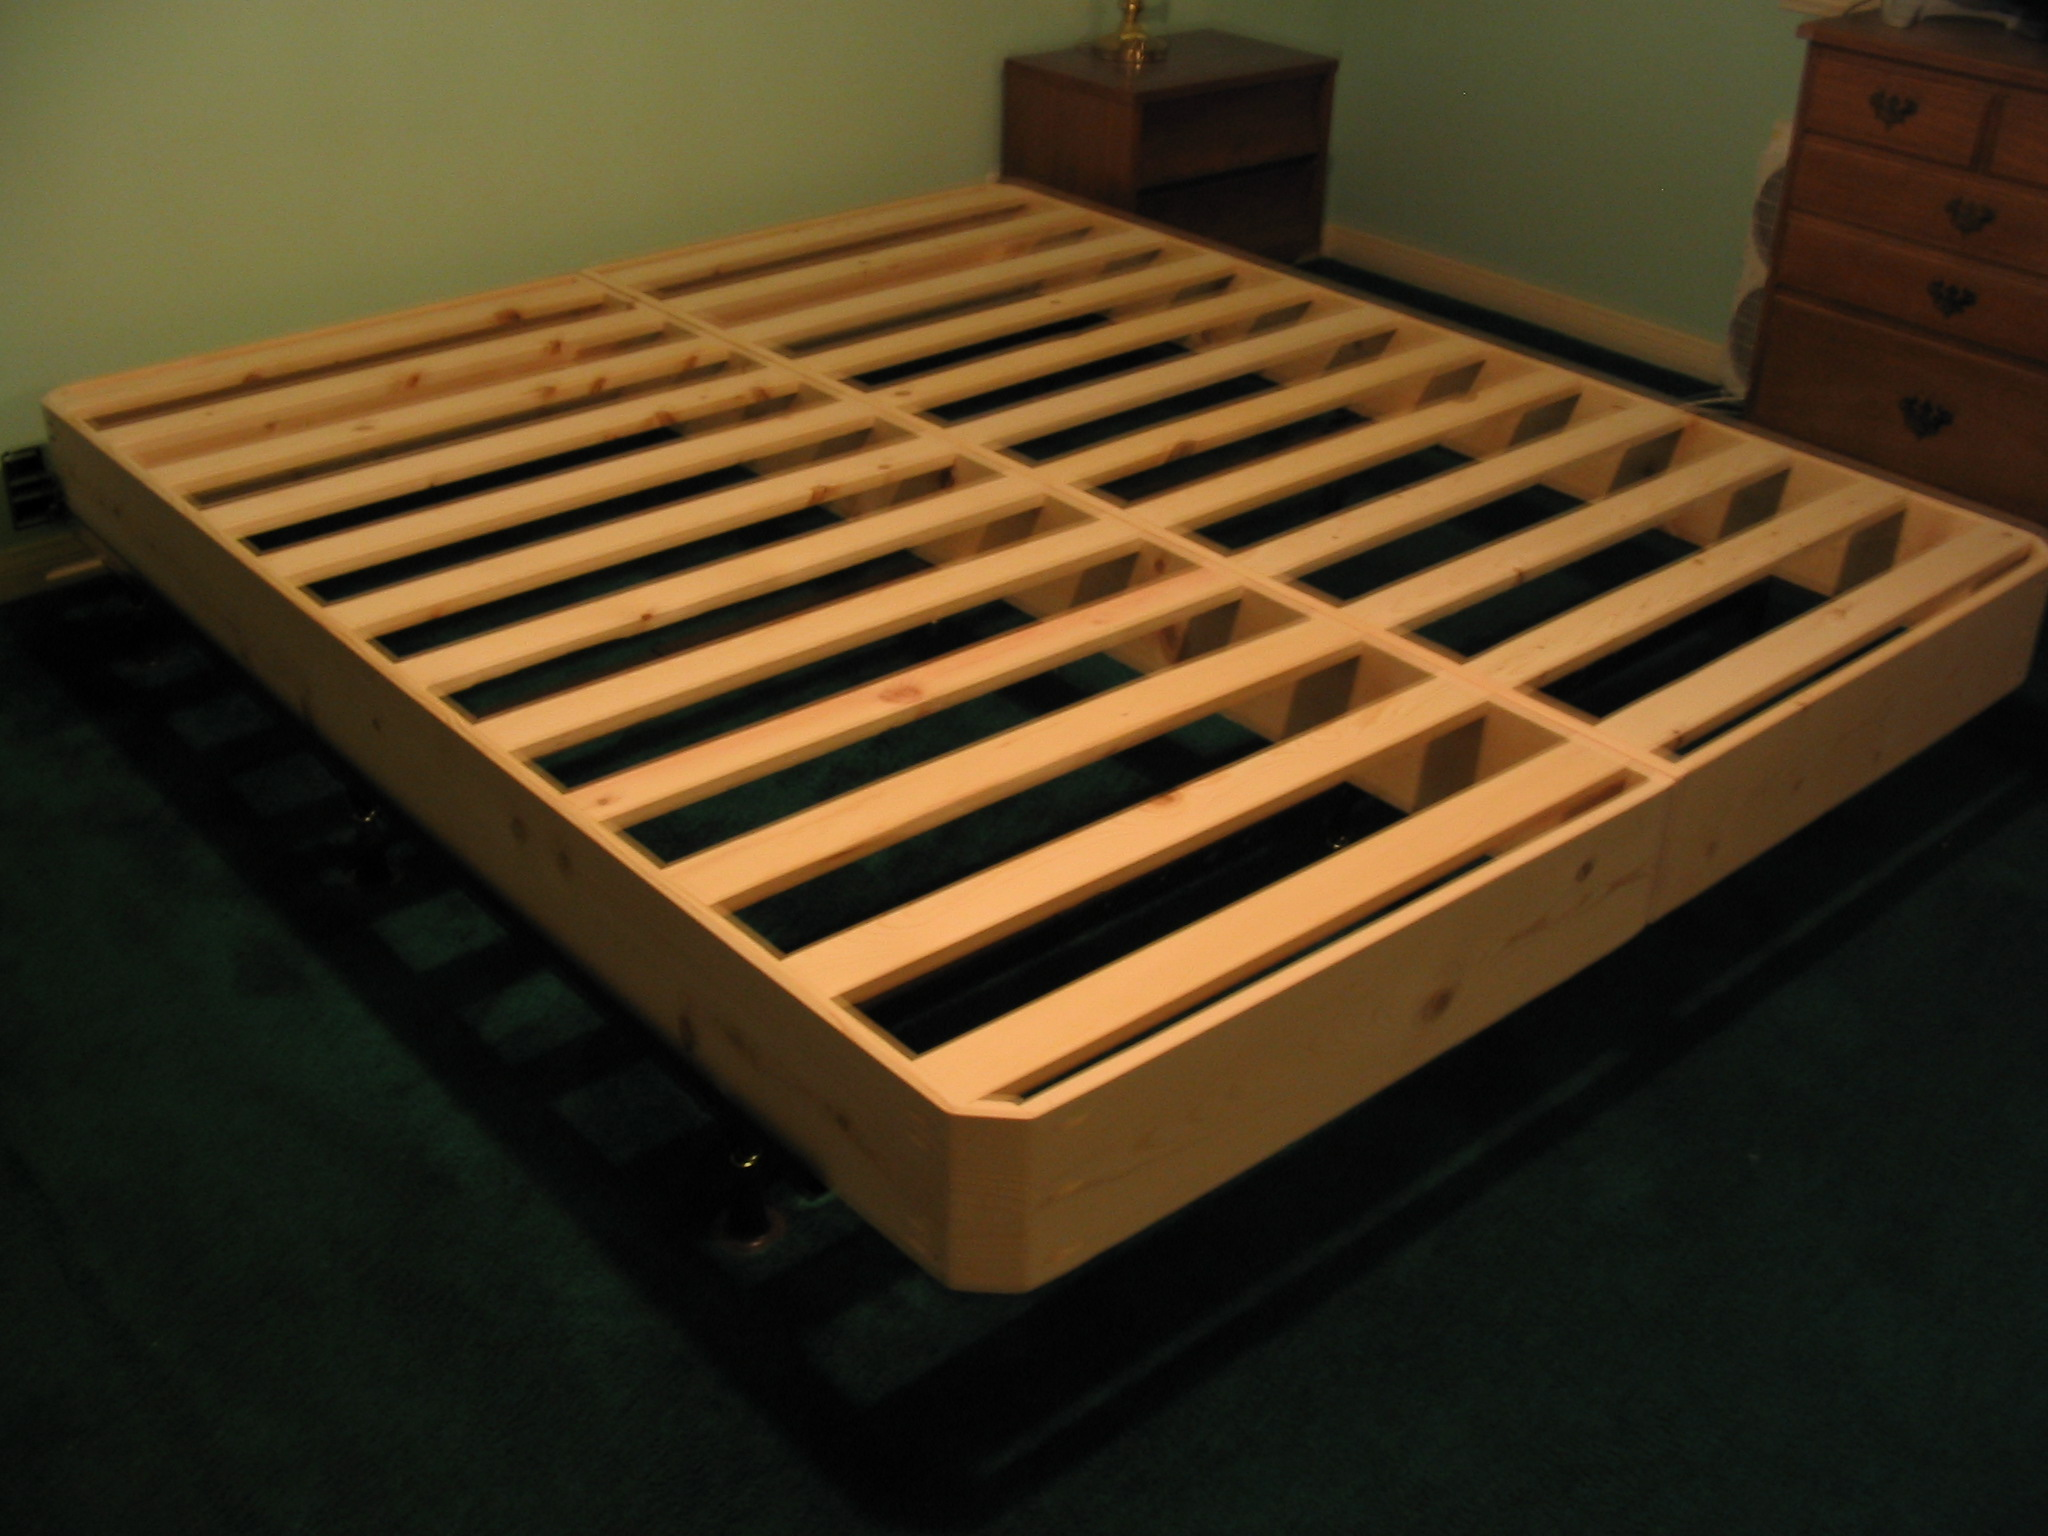 Bed Frame Plans : Choosing The Latest Bed Frames | BED ...